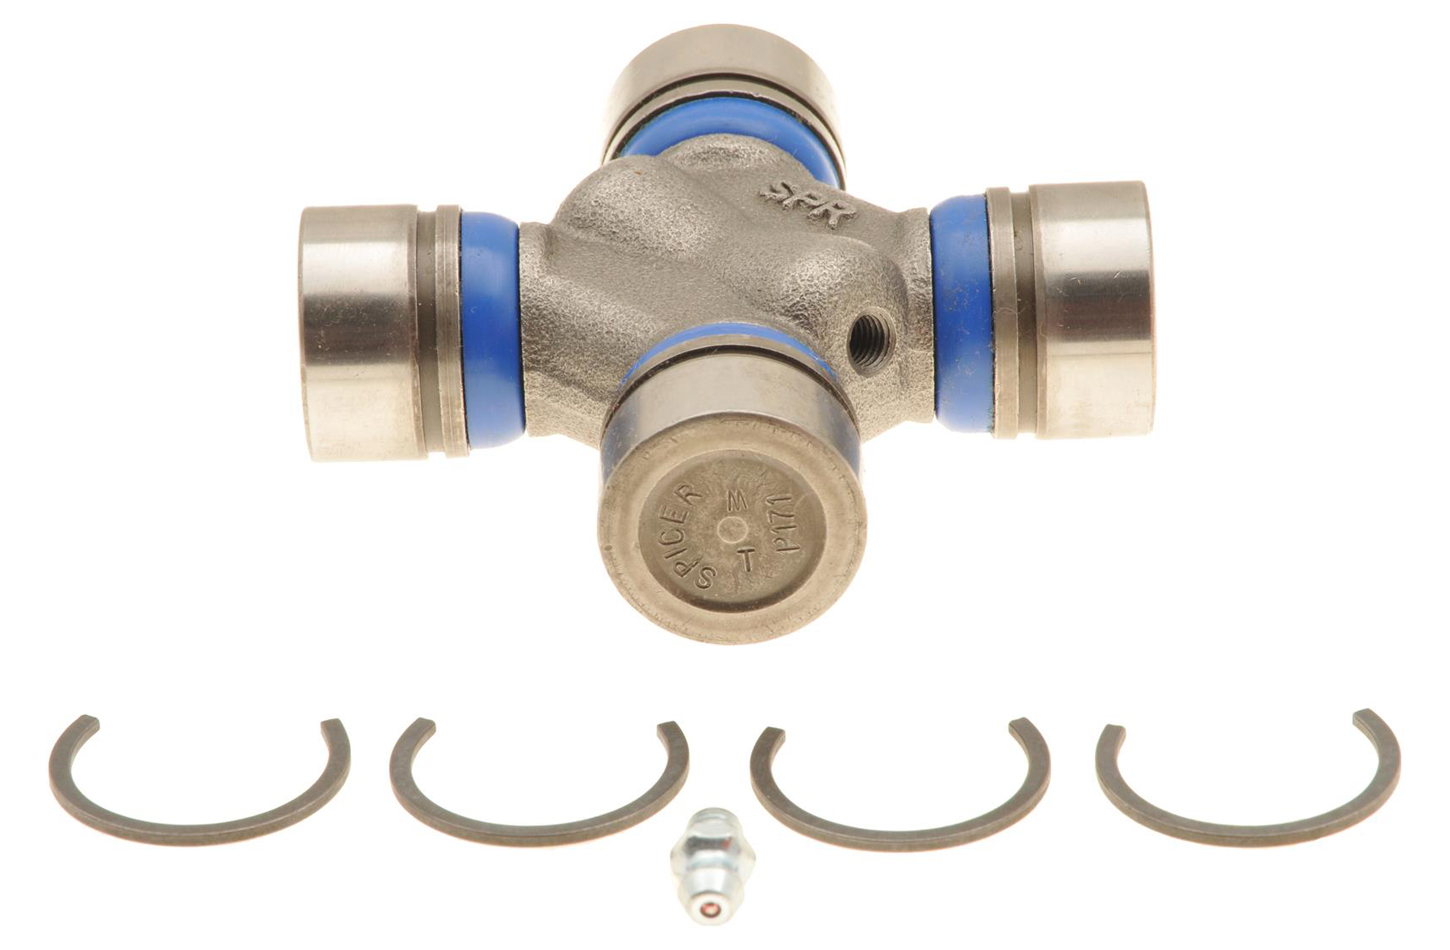 Dana-Spicer 5-3147X Universal Joint, S44 Series, 1.125 in Bearing Caps, Clips Included, Greasable, Steel, Natural, Each